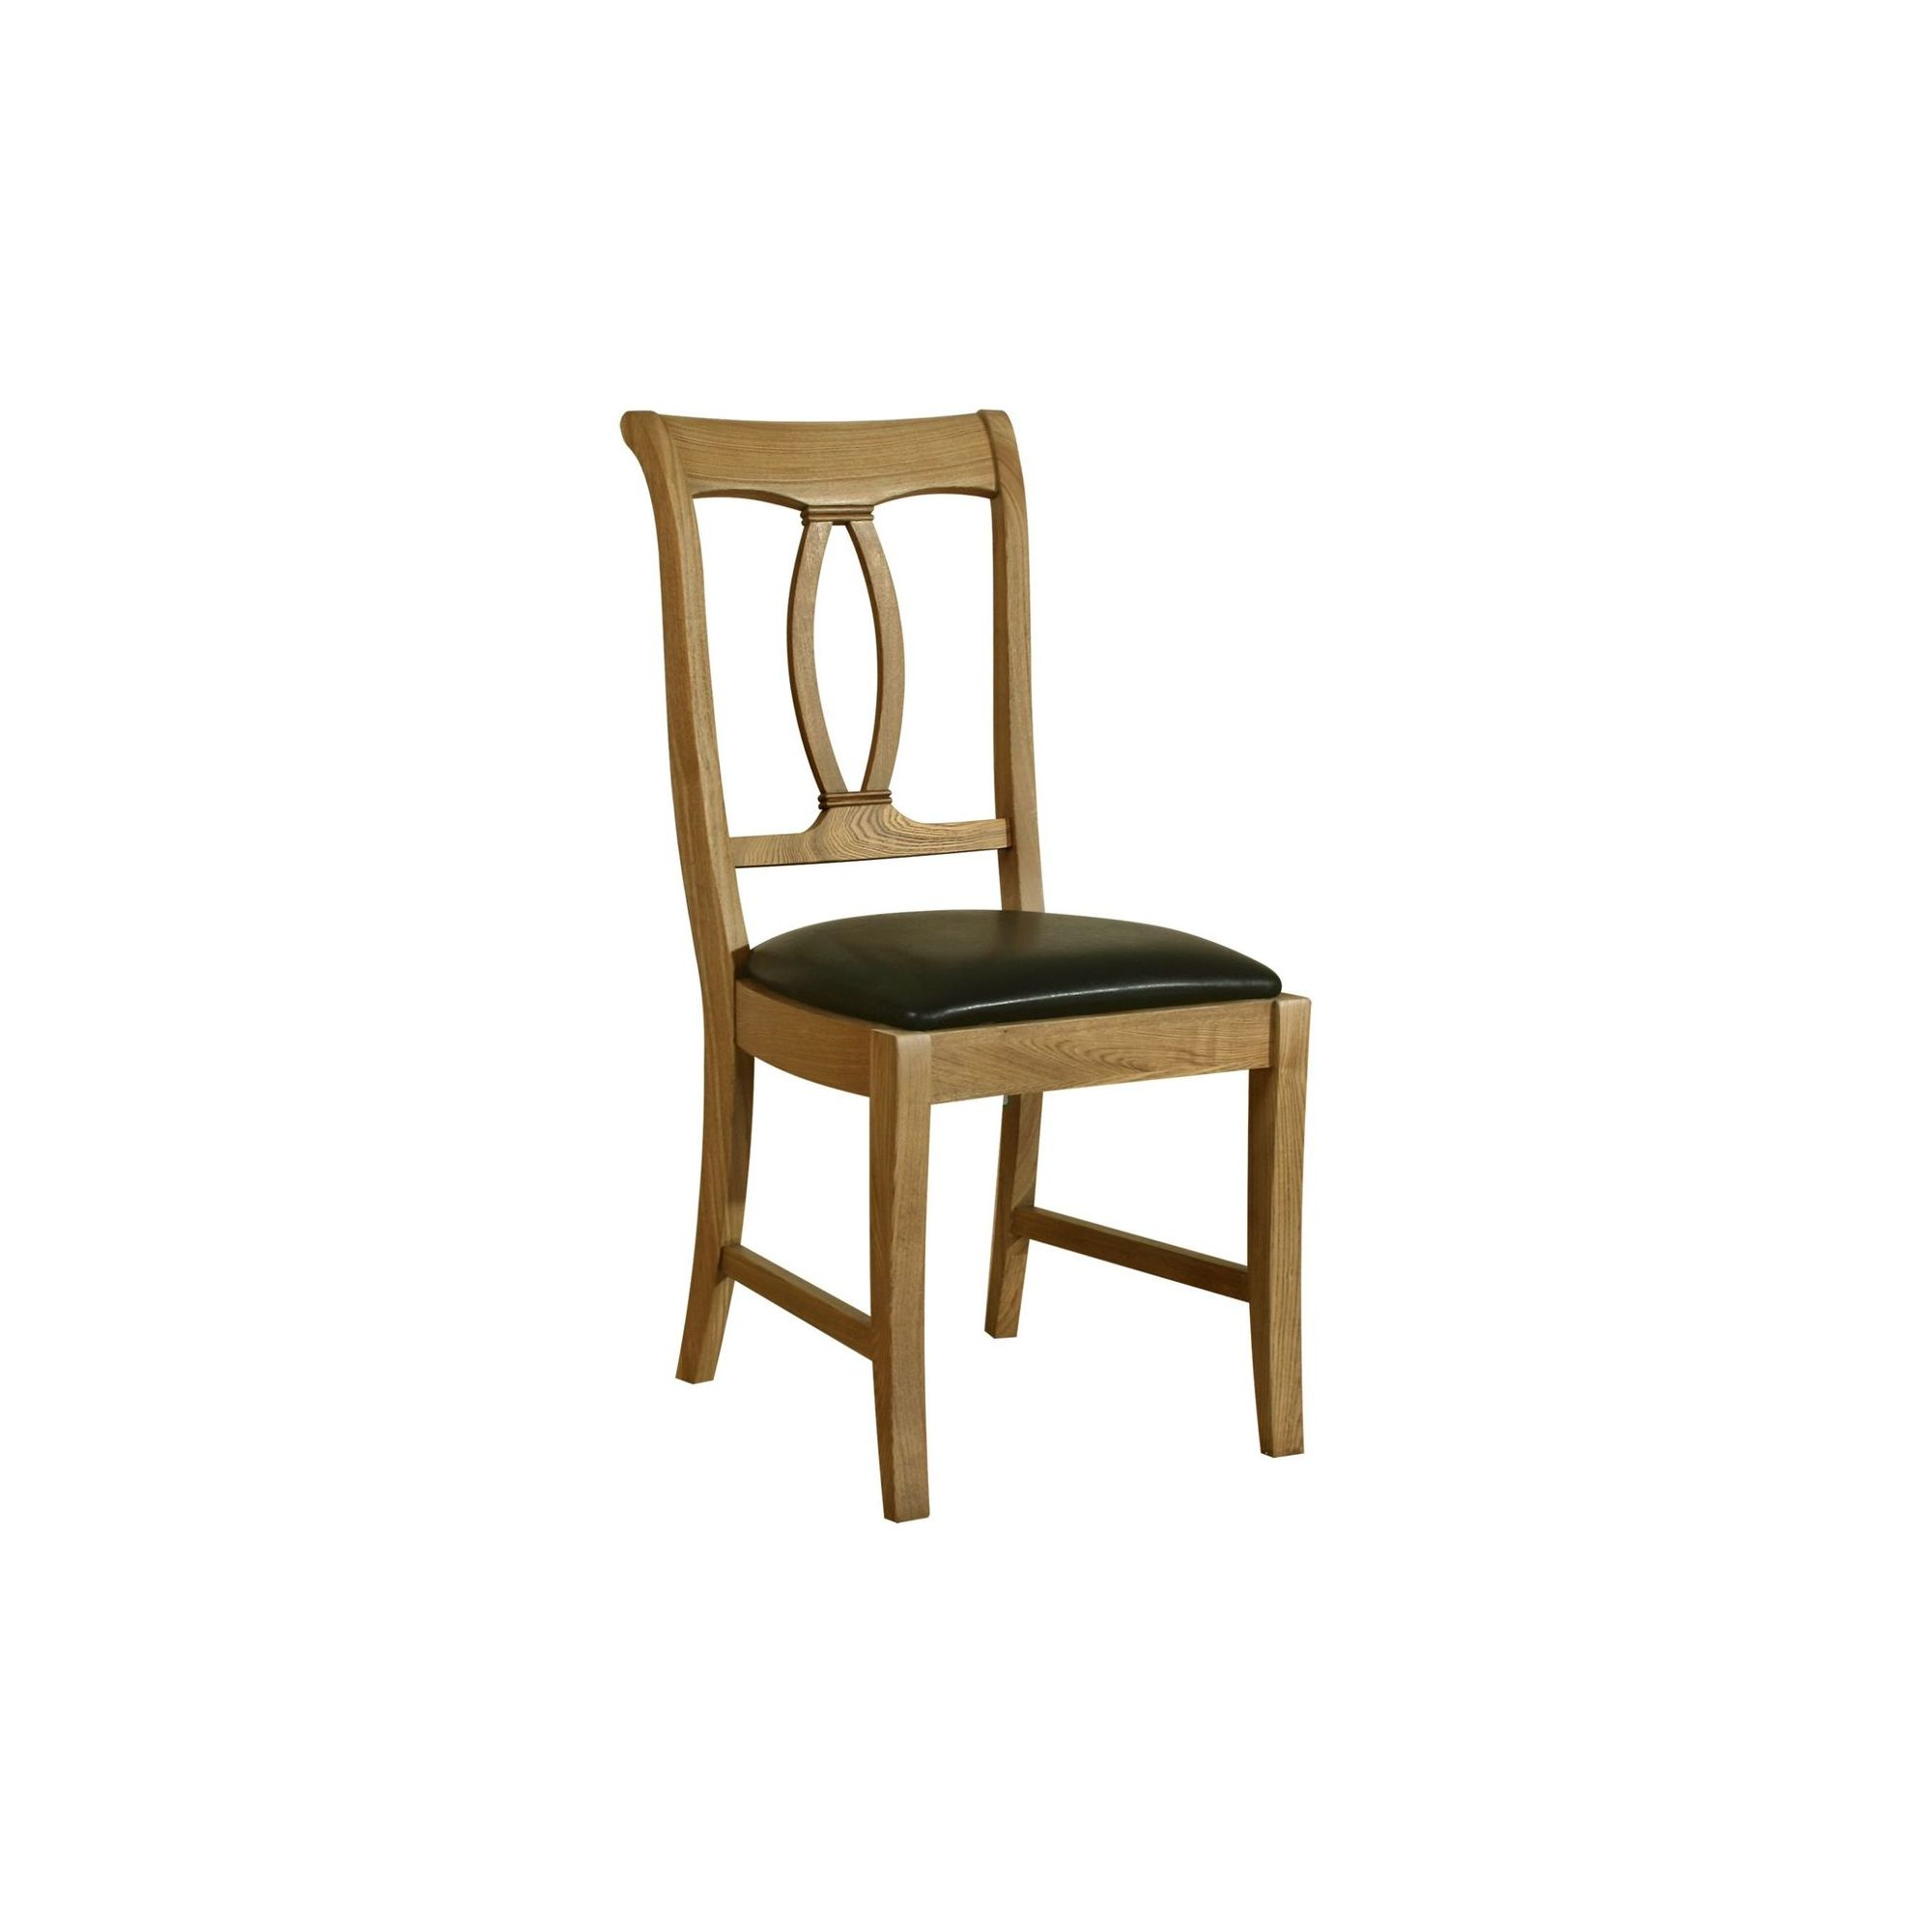 Kelburn Furniture Loire Dining Chair in Light Oak Stain and Satin Lacquer (Set of 2)